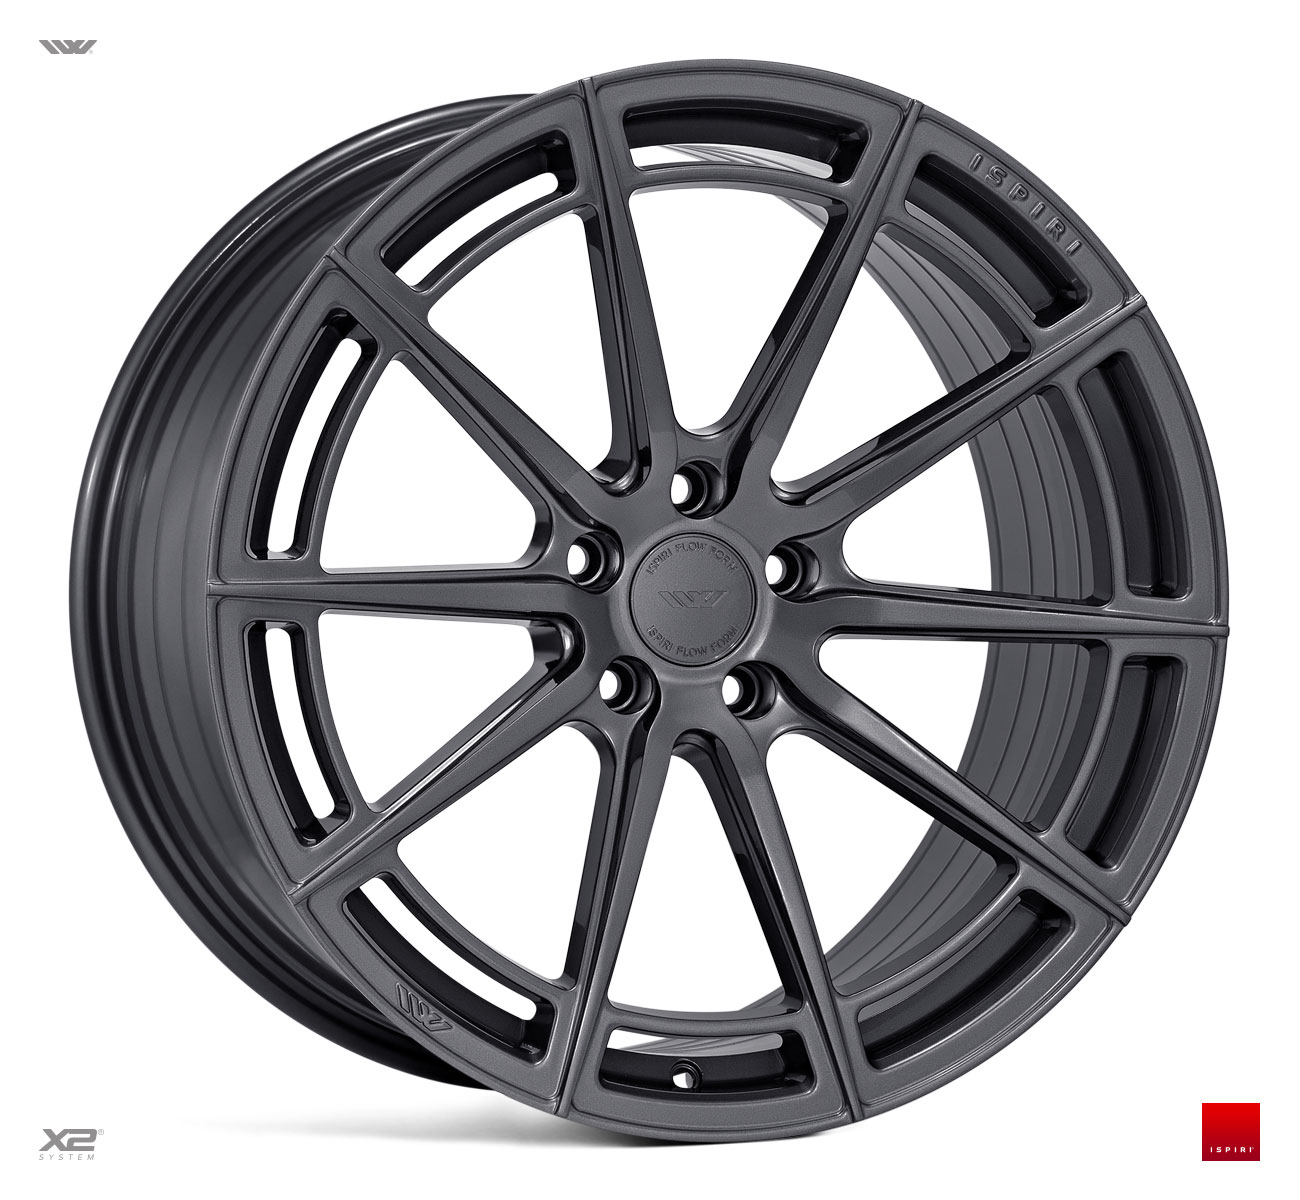 "NEW 20"" ISPIRI FFR2 MULTI-SPOKE ALLOY WHEELS IN CARBON GRAPHITE, WIDER 10"" OR 10.5"" REAR"